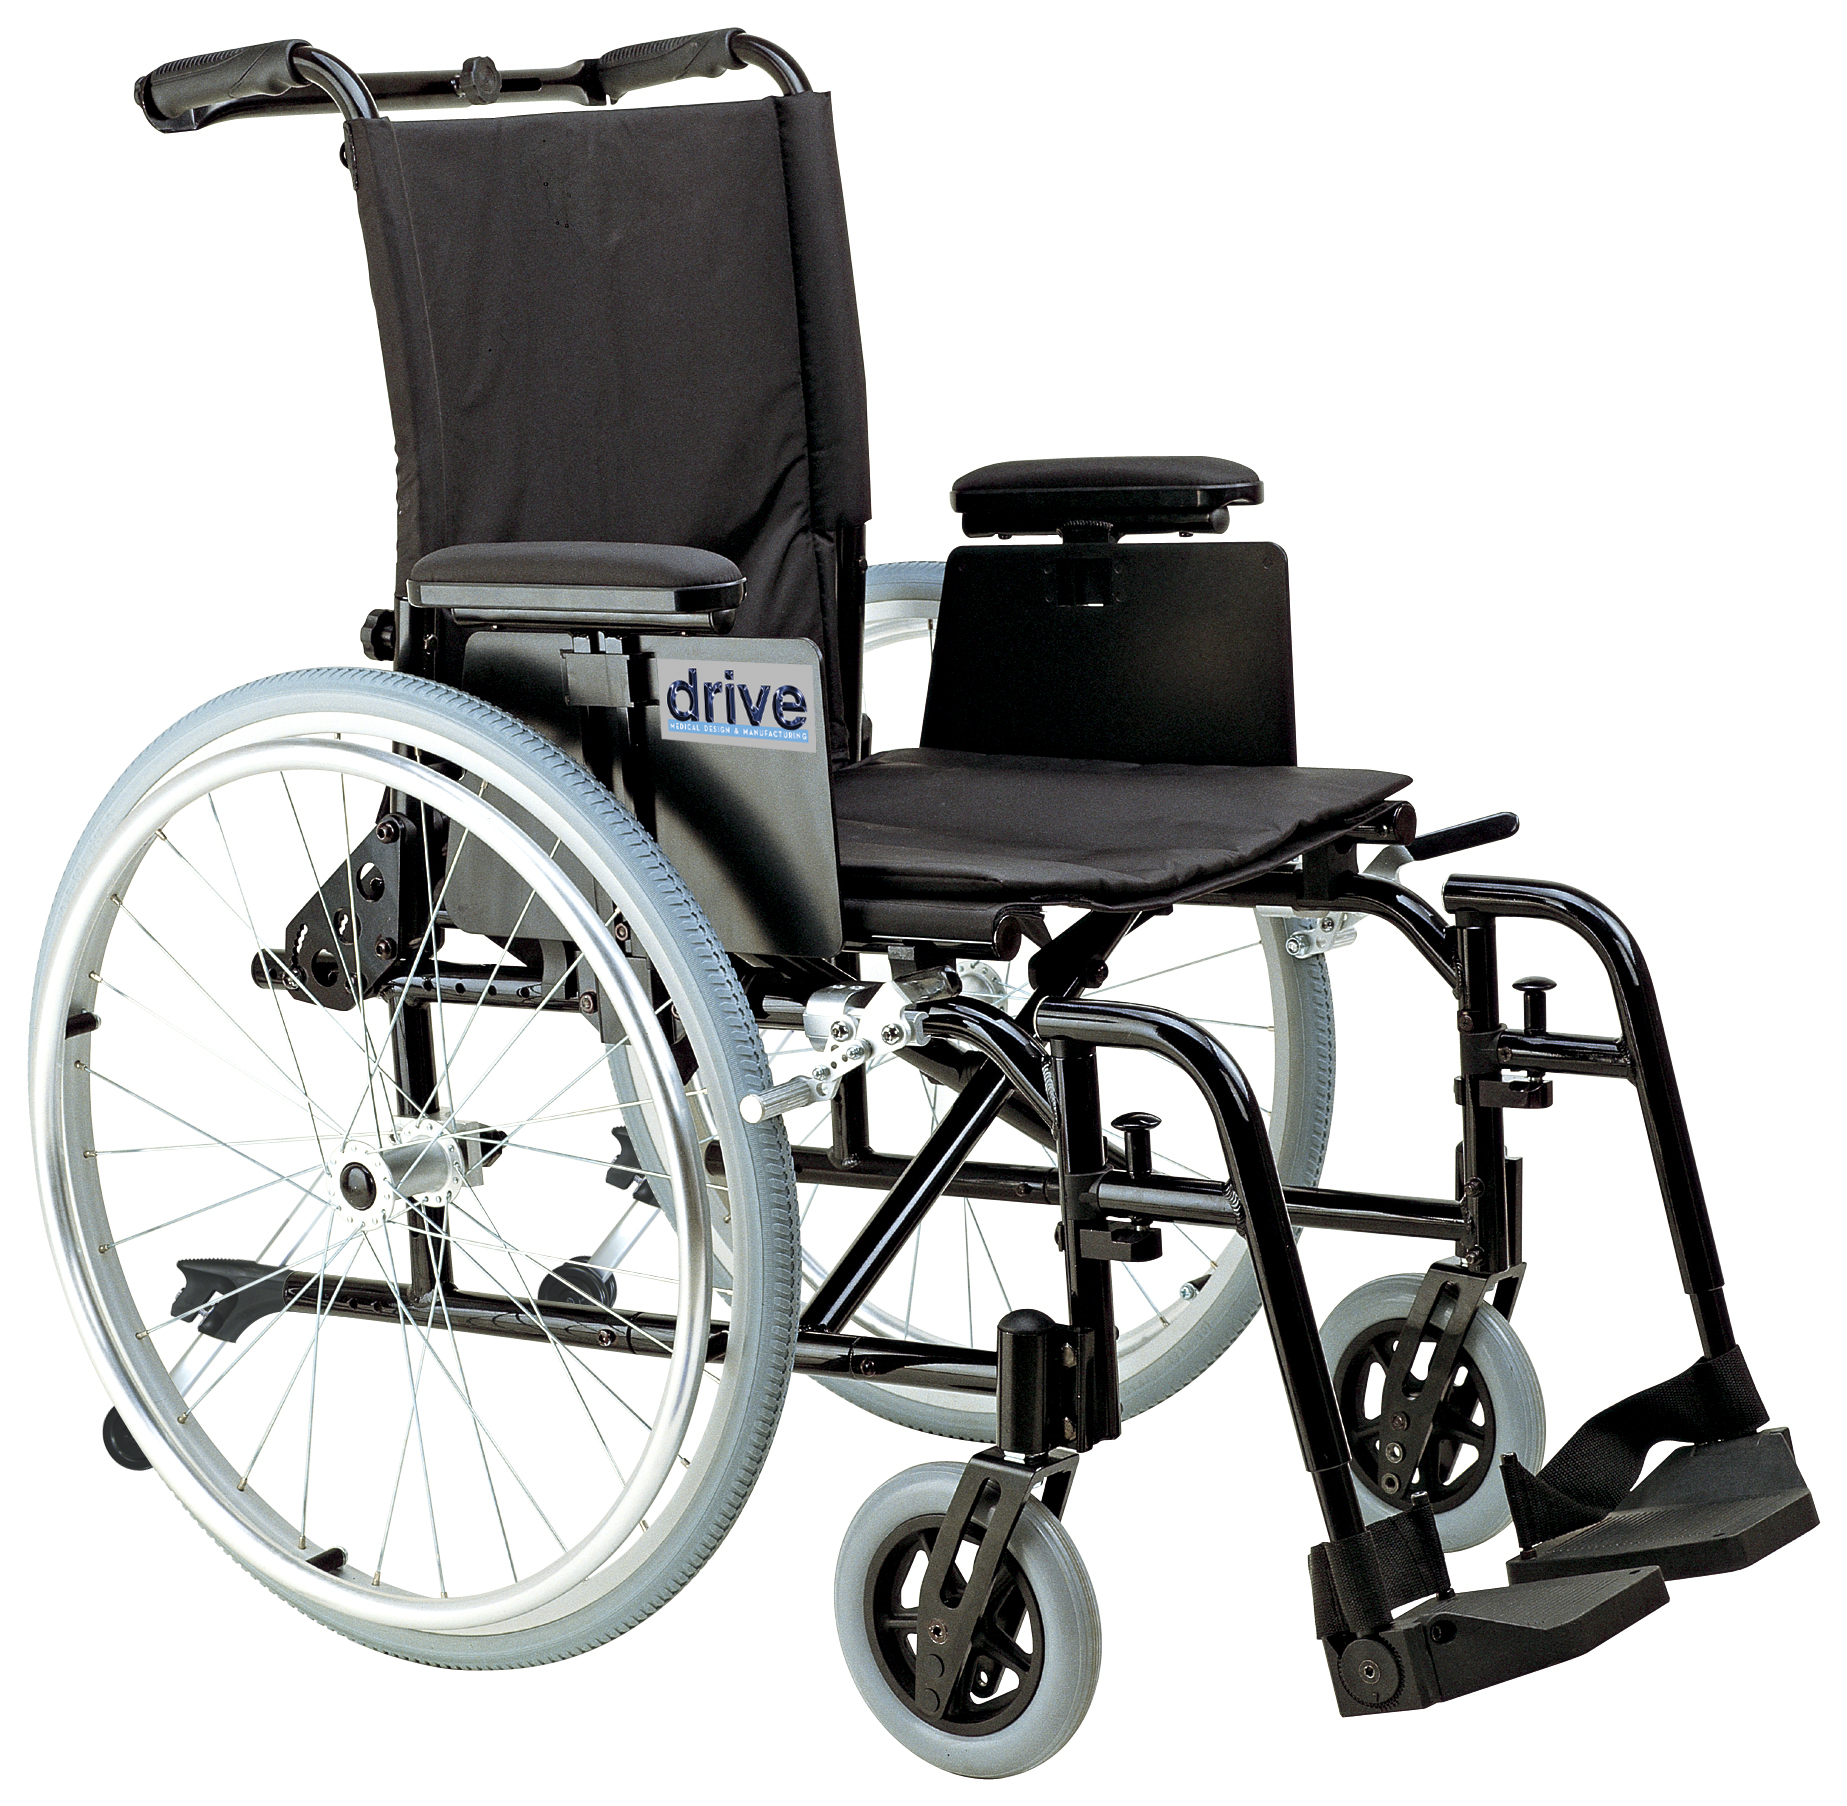 Drive Cougar Ultra Lightweight Rehab Wheelchair with Various Arms Styles and Front Rigging Options